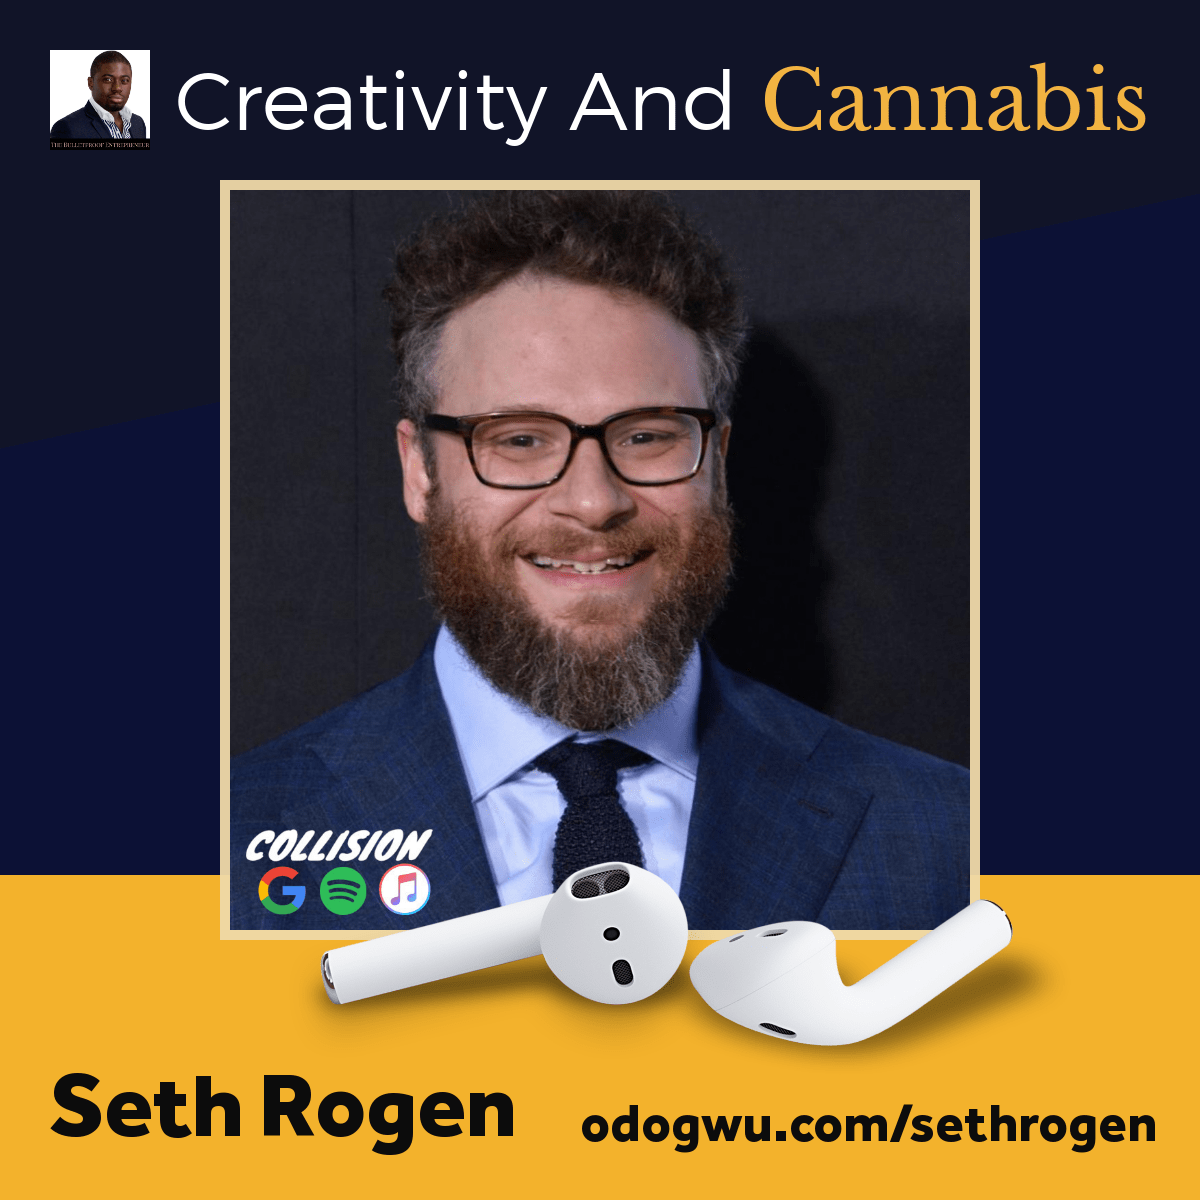 Seth Rogen Discusses Cannabis & Creativity At Collision Conference